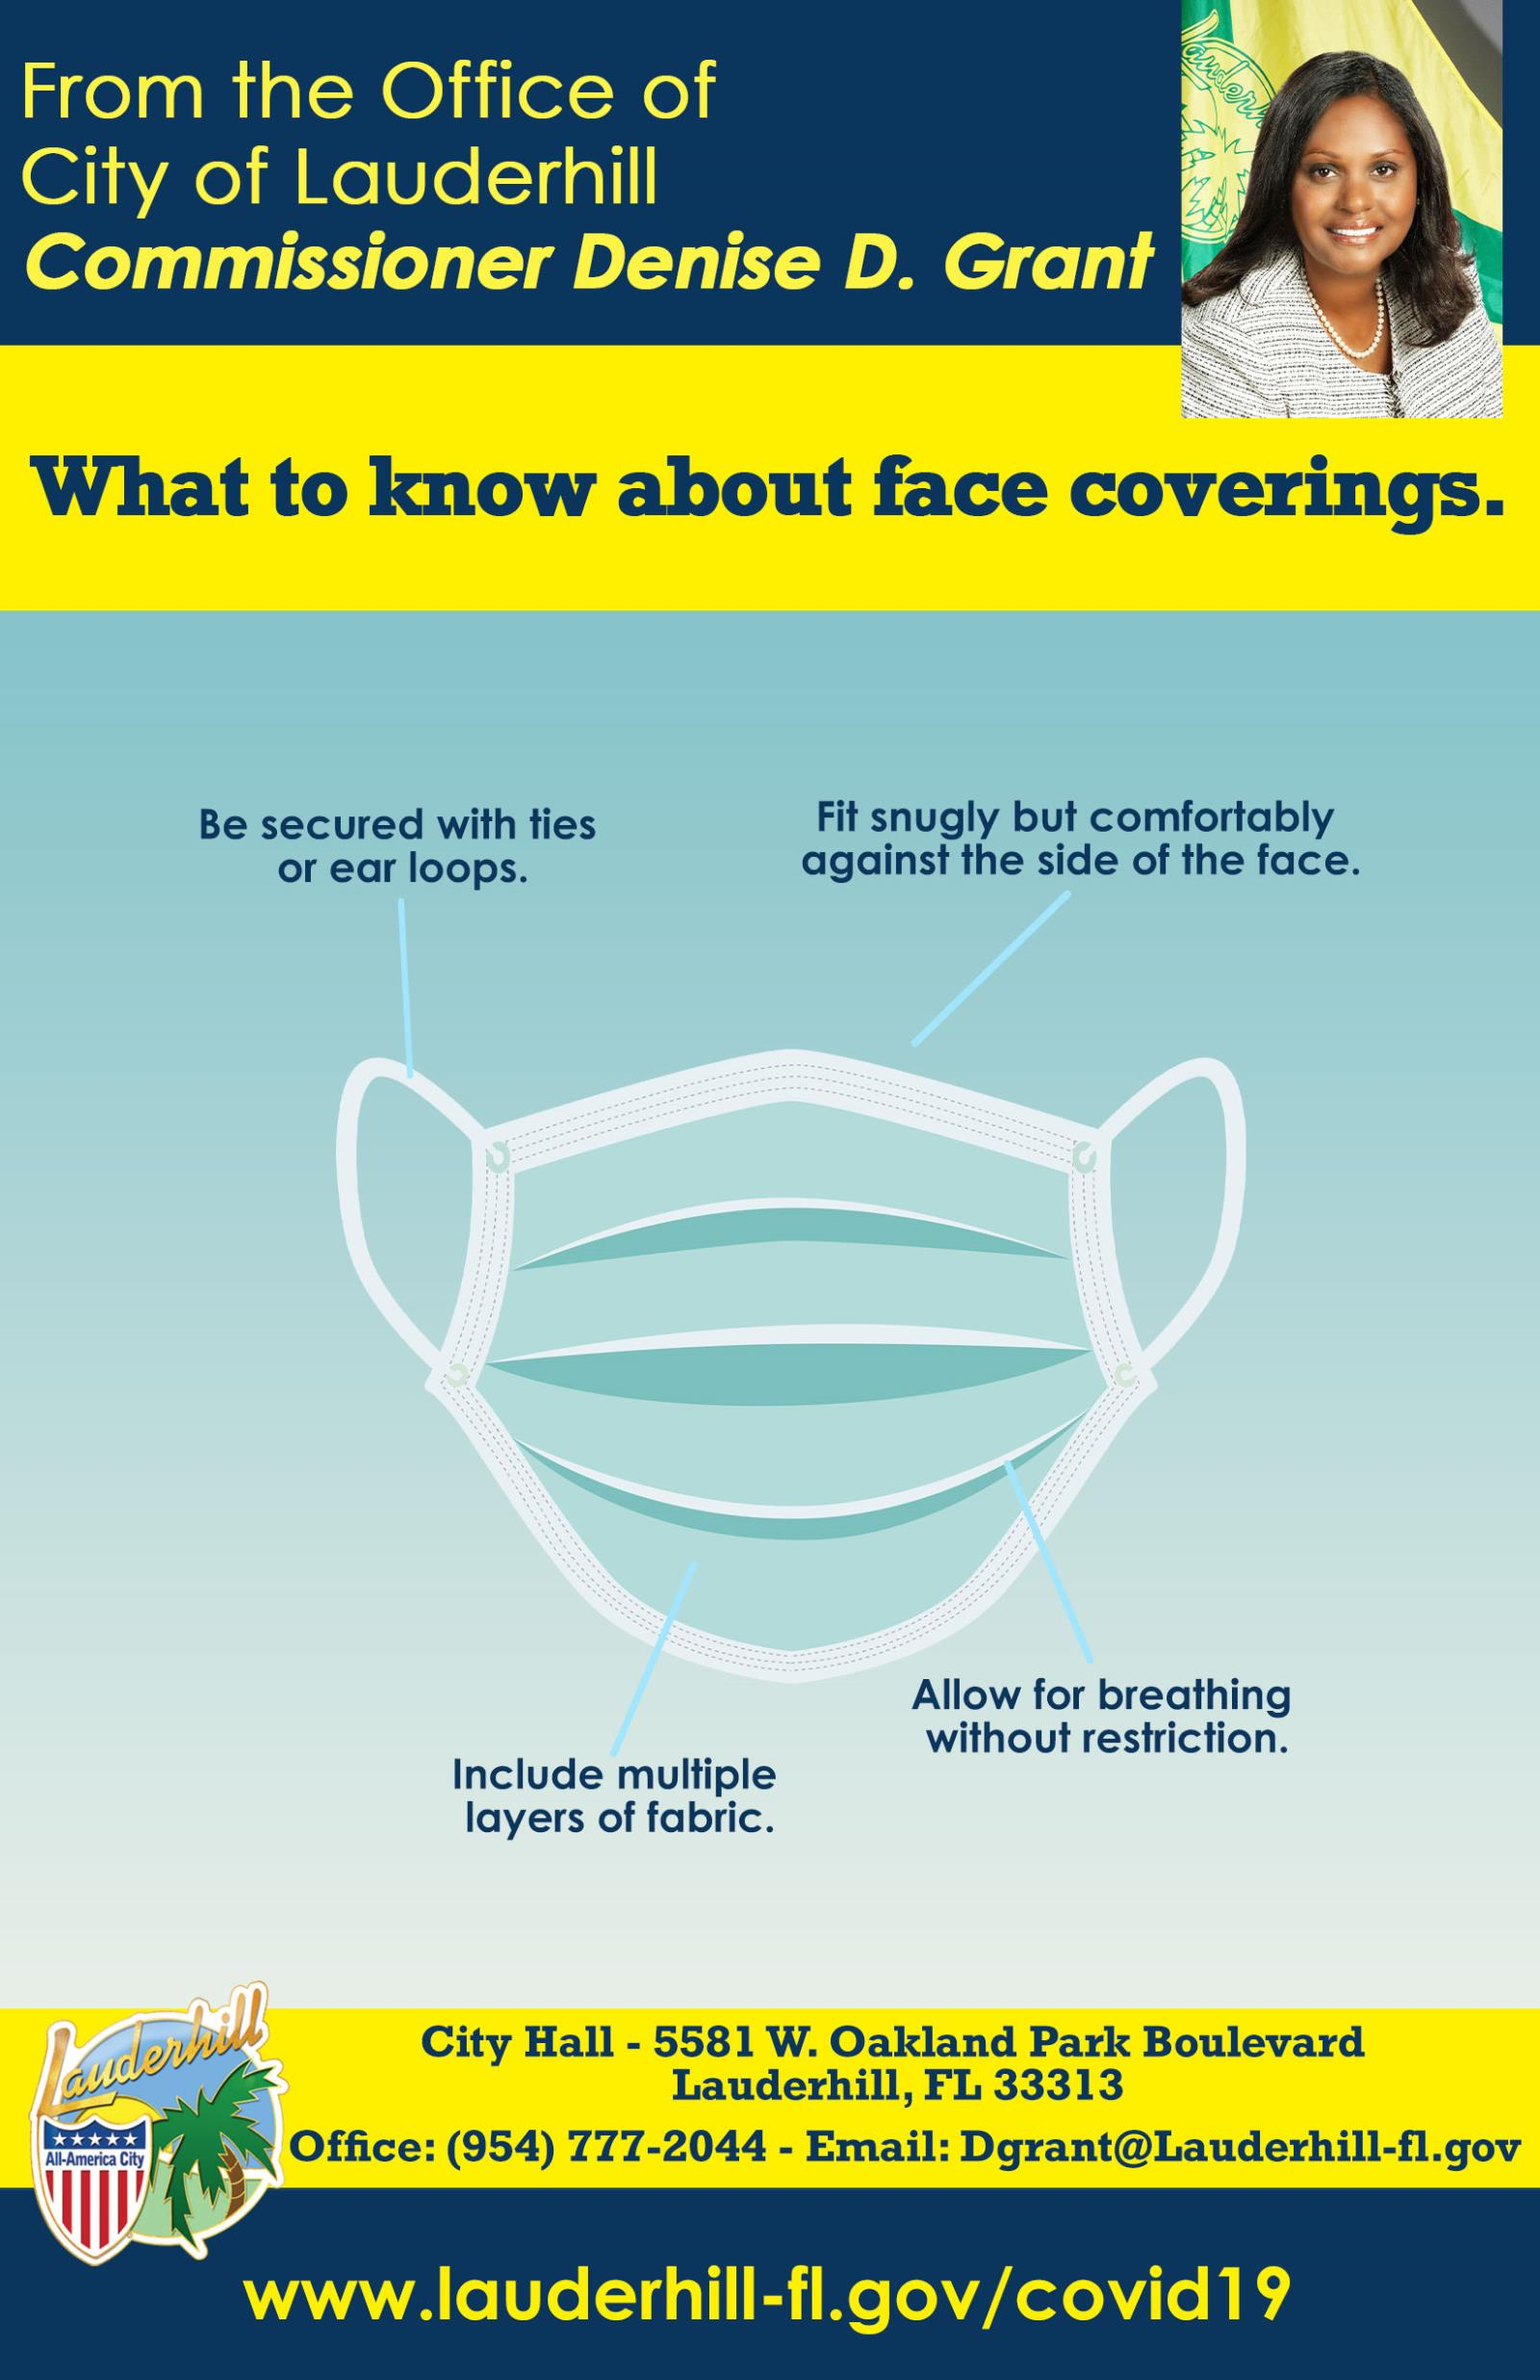 Commissioner Grant - COVID-19 Precautions - Face Coverings - Flyer